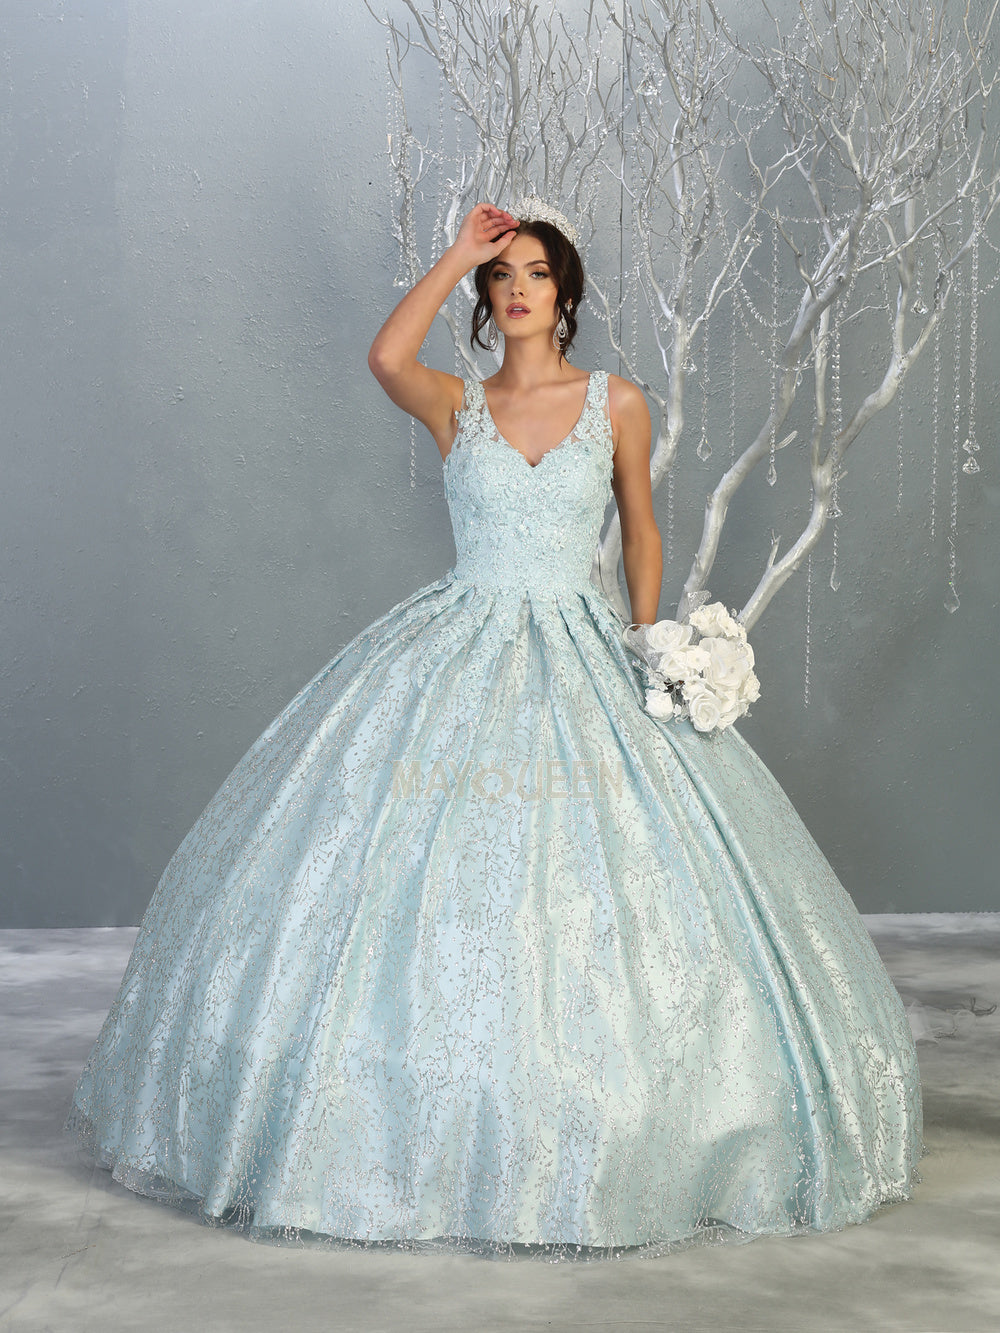 MQ LK149 - A Line Quinceanera Gown with Floral Applique Bodice & Glitter Print Skirt